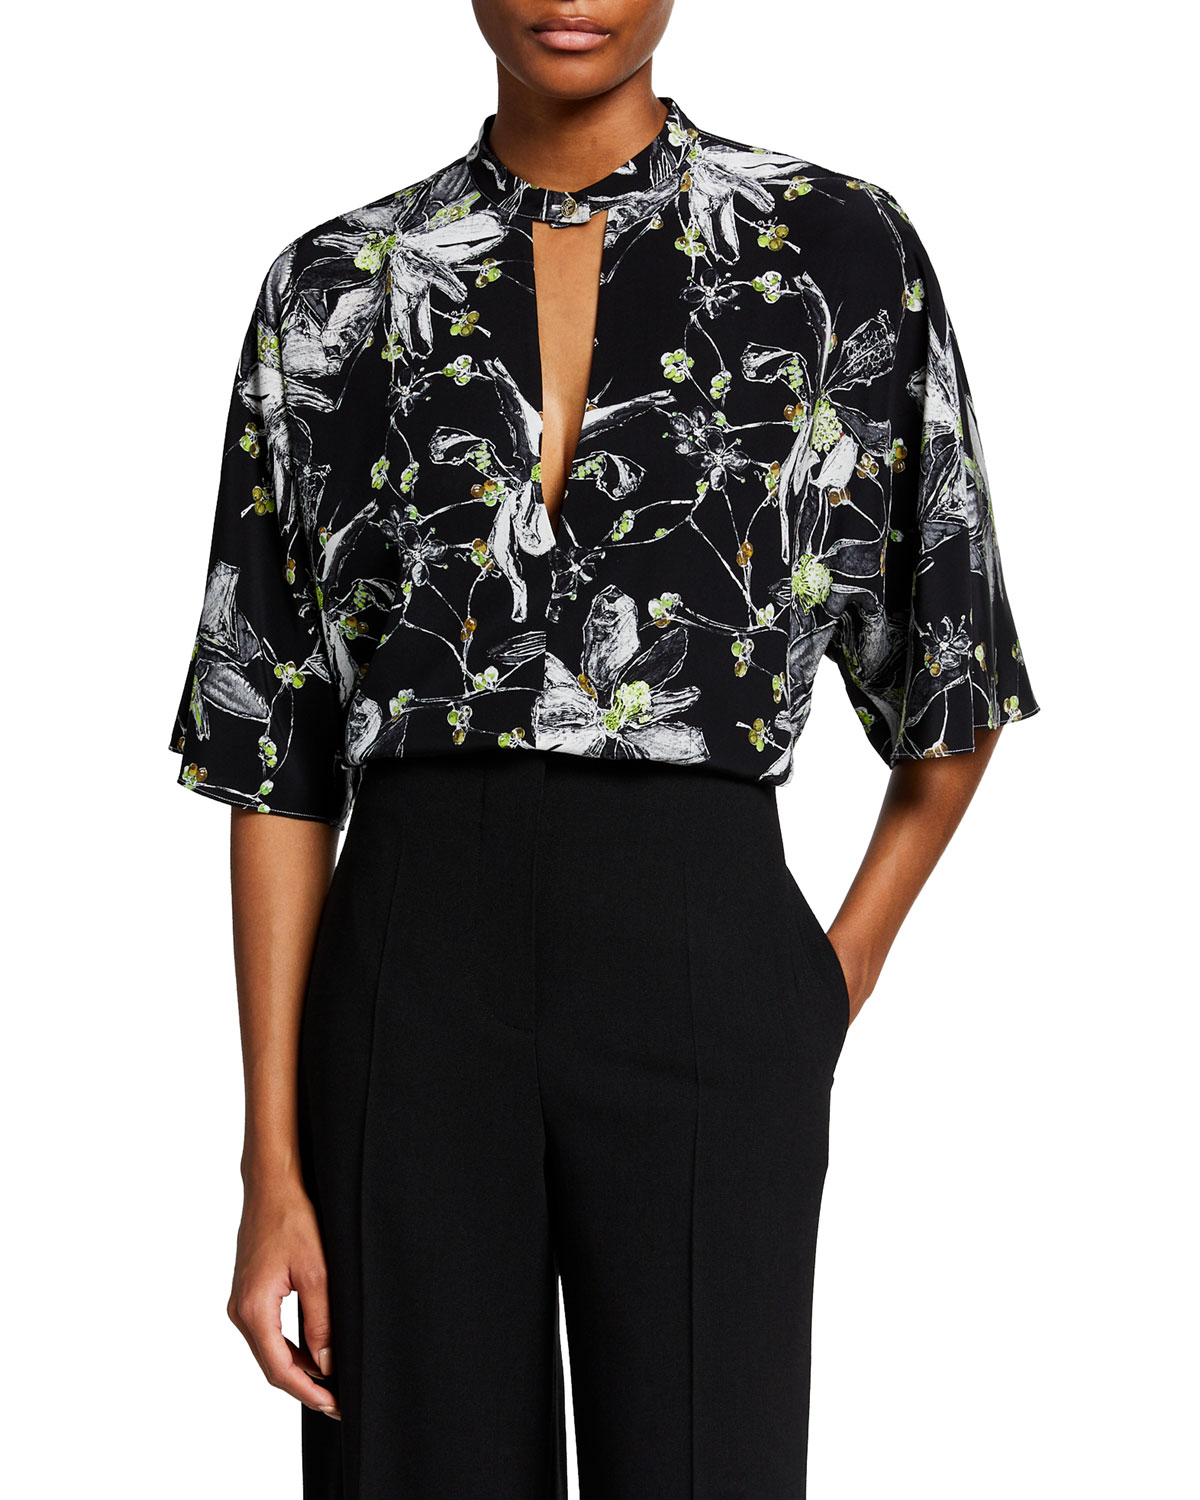 Floral-Printed Crepe De Chine Tunic Top